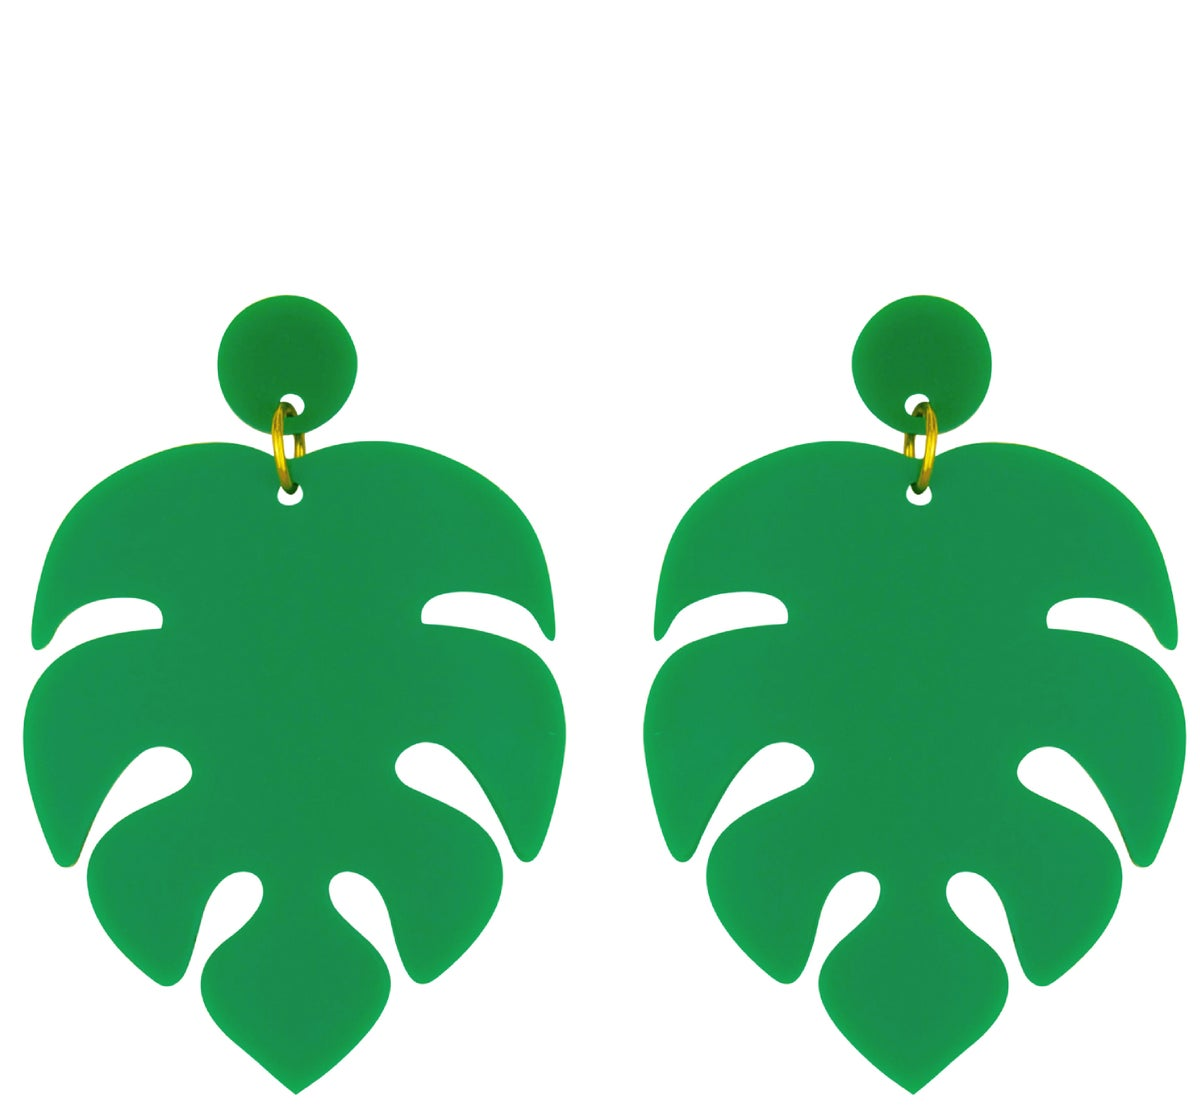 Image of Monstera Swiss Cheese Plant Earrings